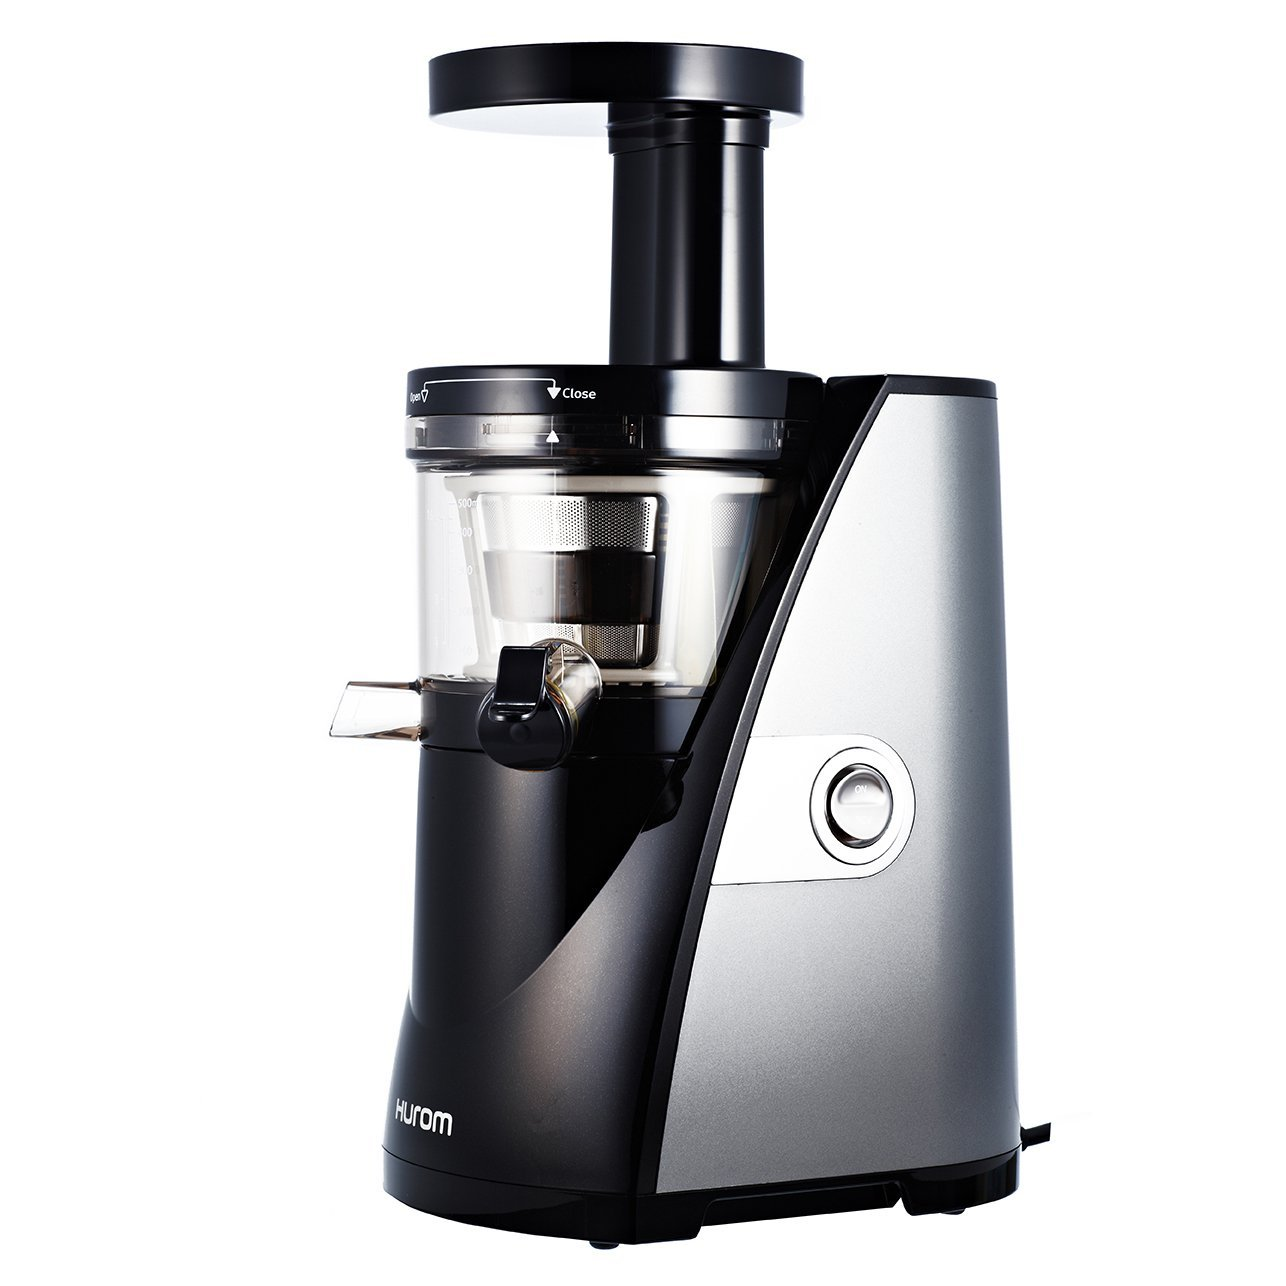 Best Masticating Juicer For Home Use : 5 Best Hurom Juicer Reviews UPDATED: 2018 The Home Savant